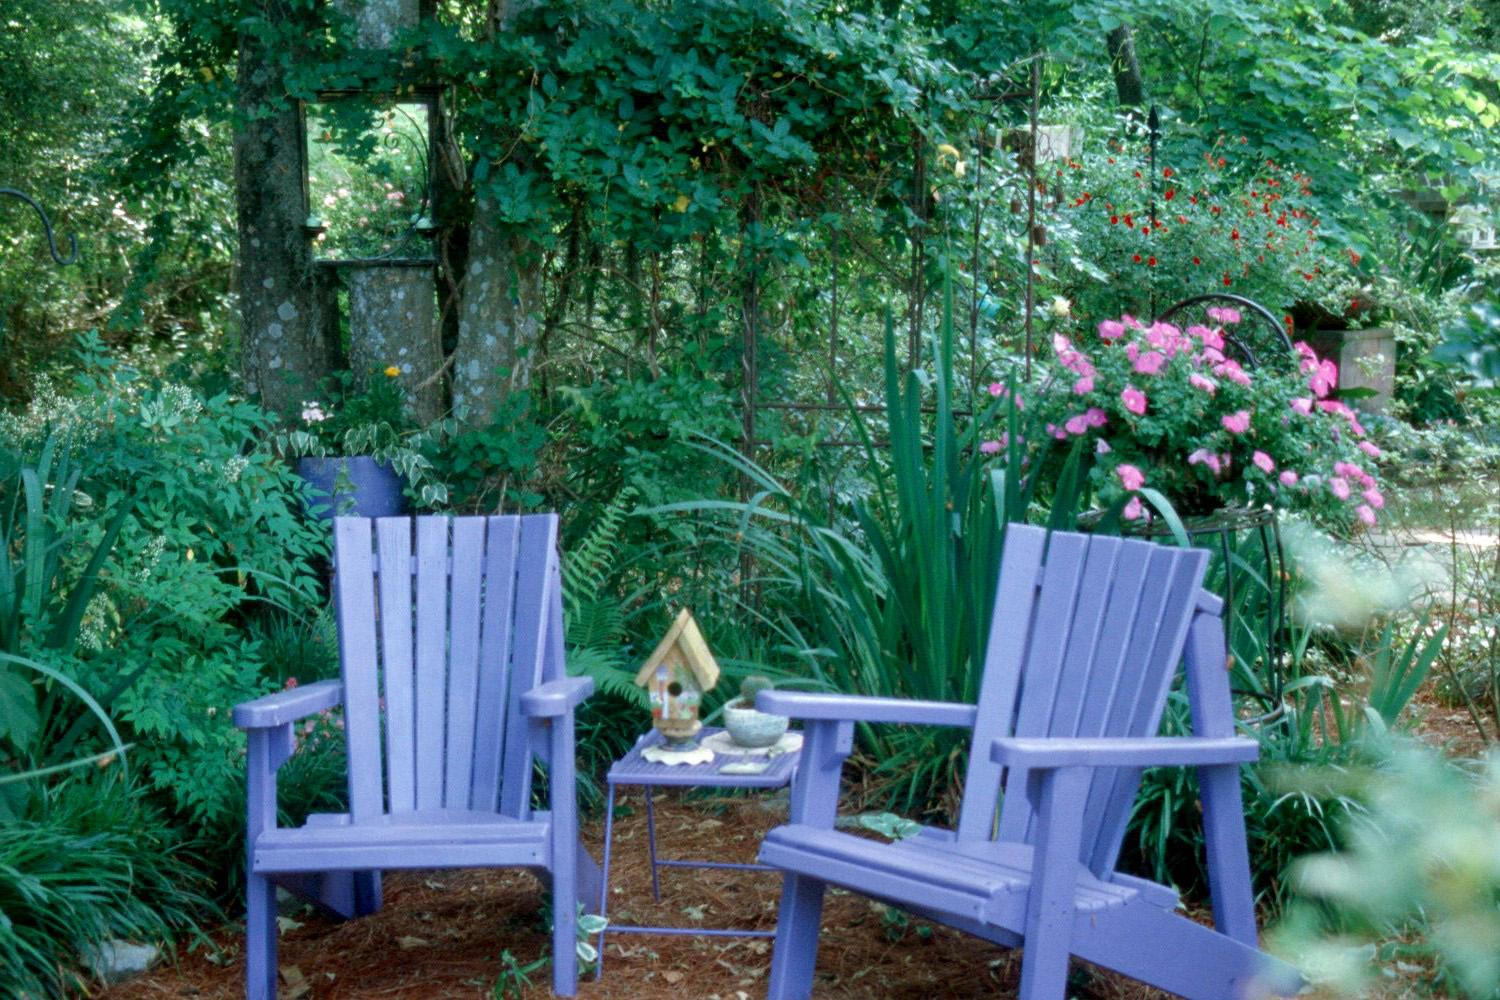 The mirror hanging on the tree over the left Adirondack chair blends comfortably into this lovely home-like setting.